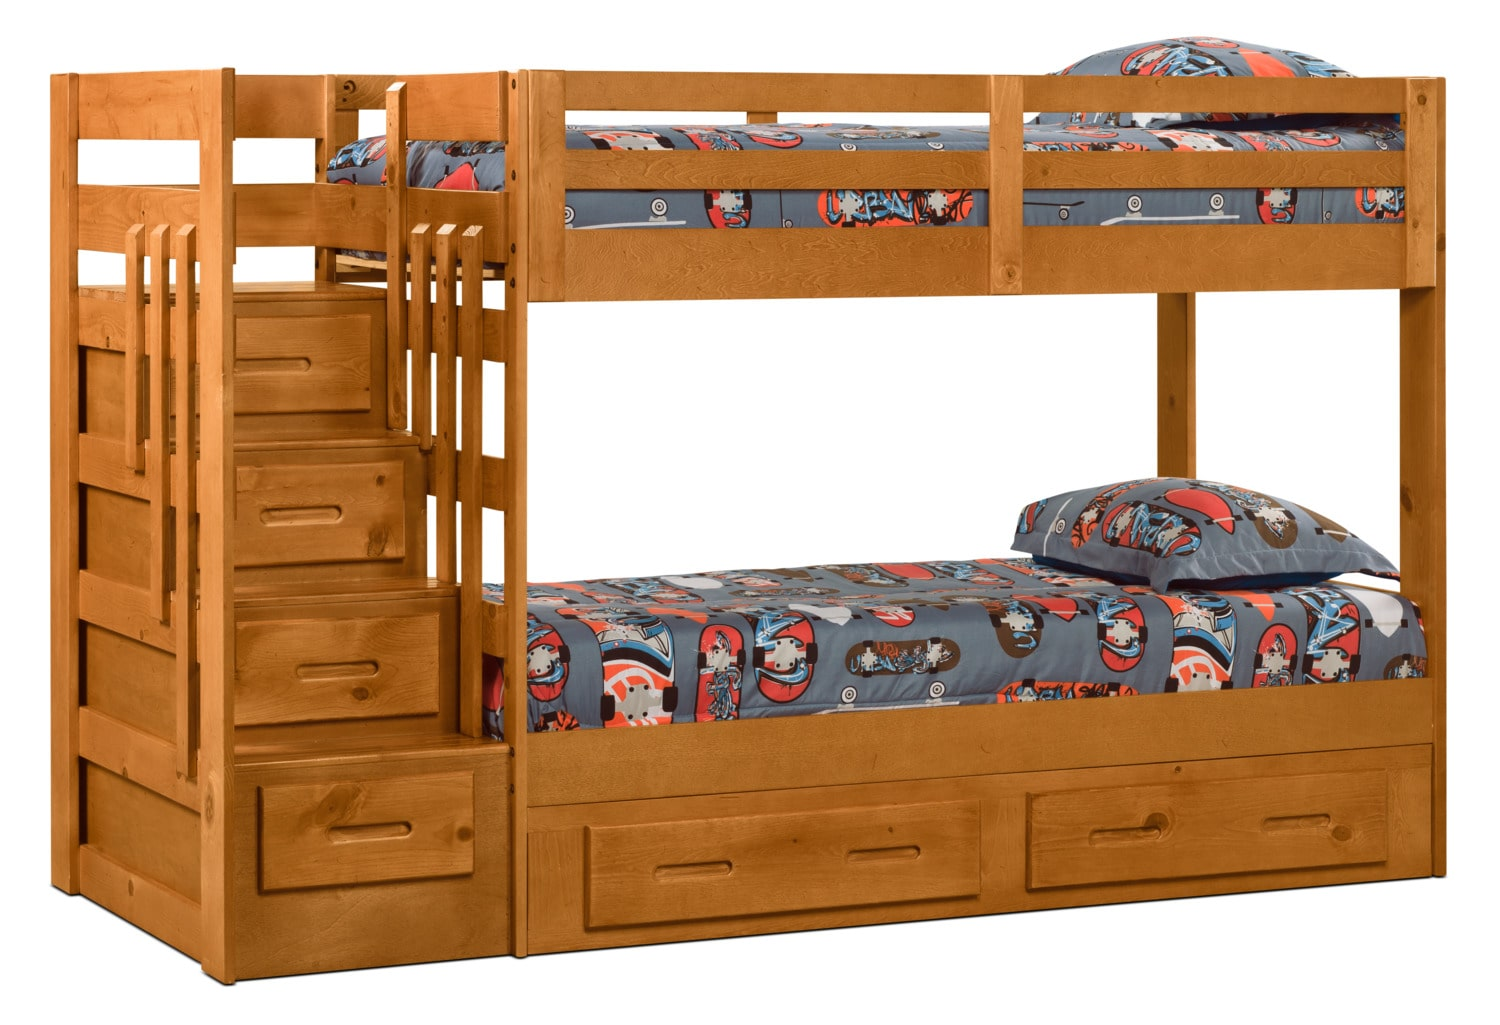 Ponderosa Staircase Bunk Bed with Storage Trundle